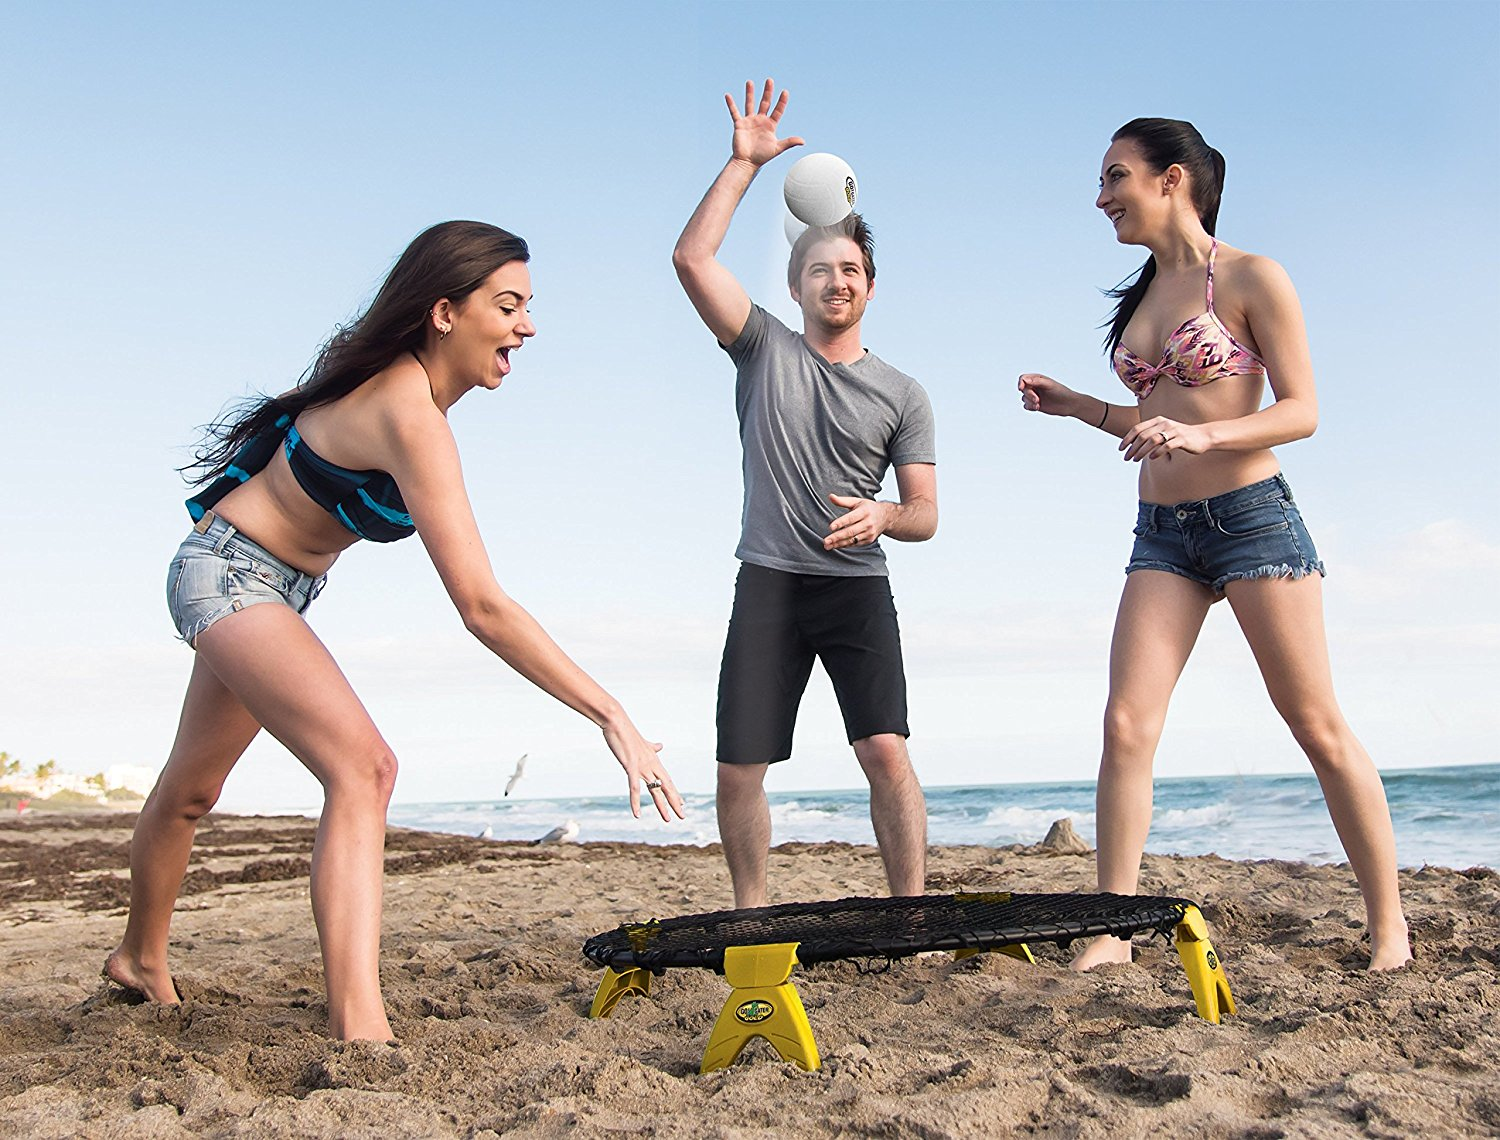 spikeball-beach-game-for-adults